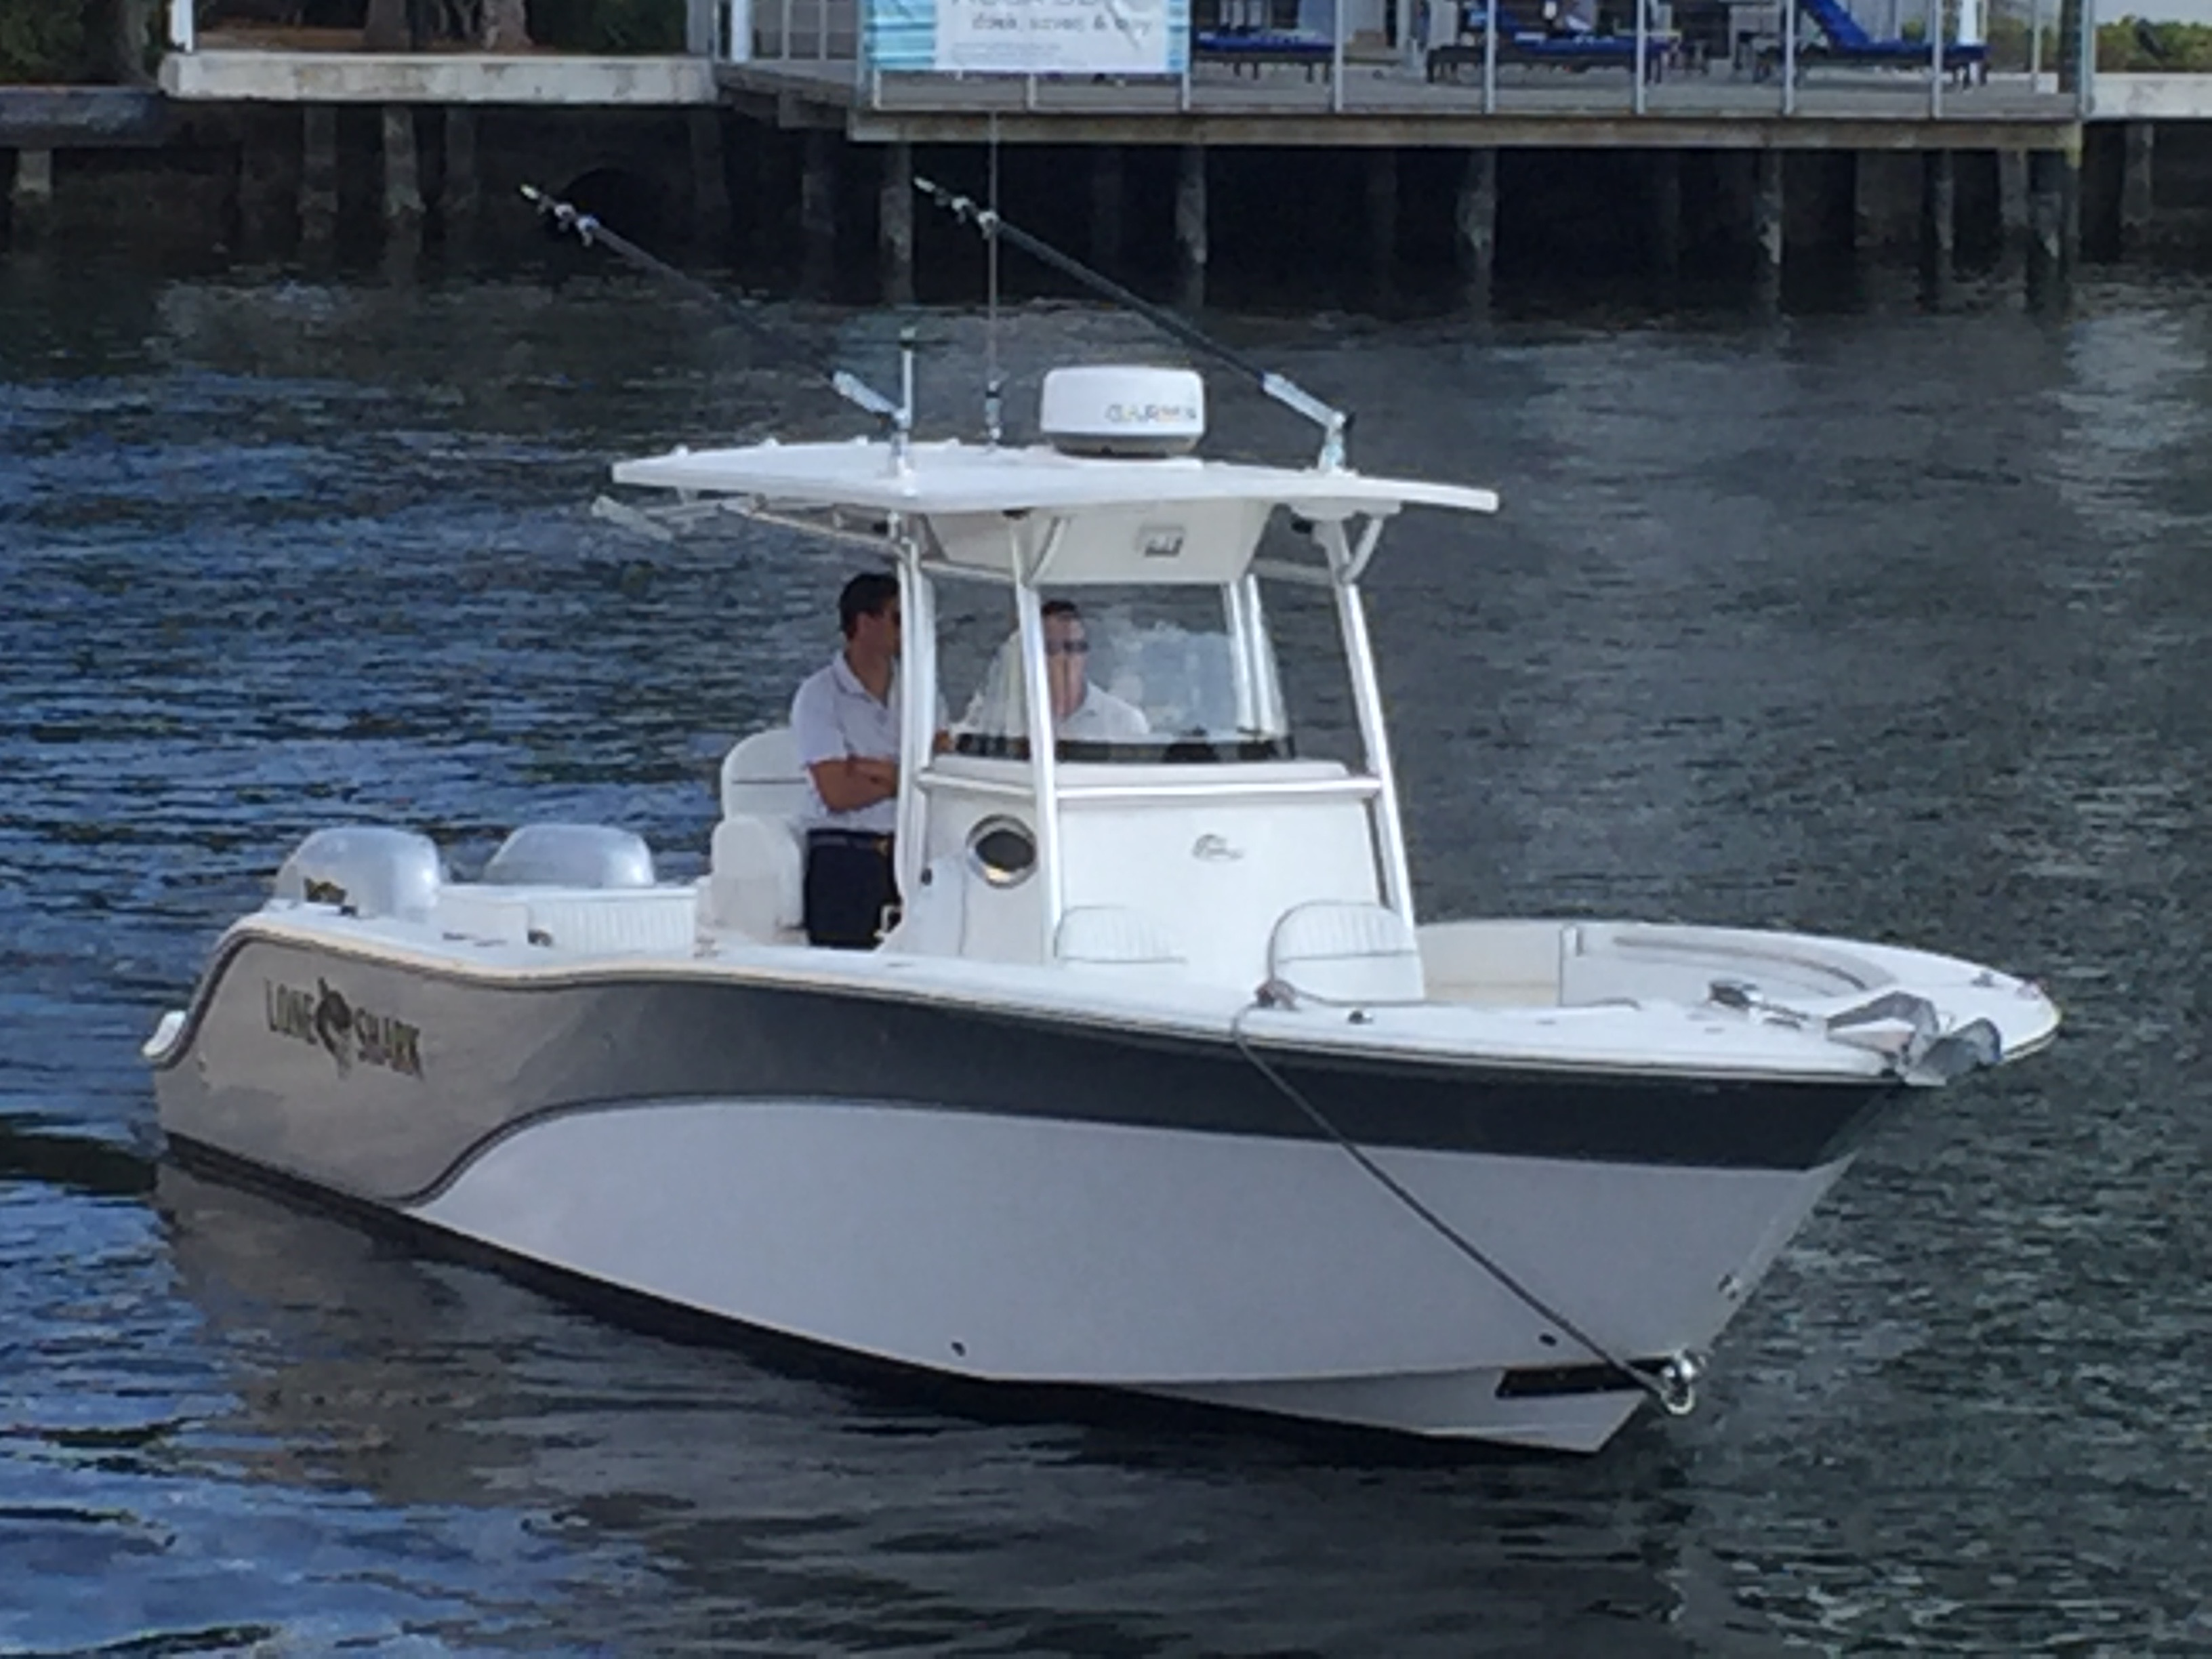 Boats for Sale Used Boats Boat Classified Ads Power Boats for